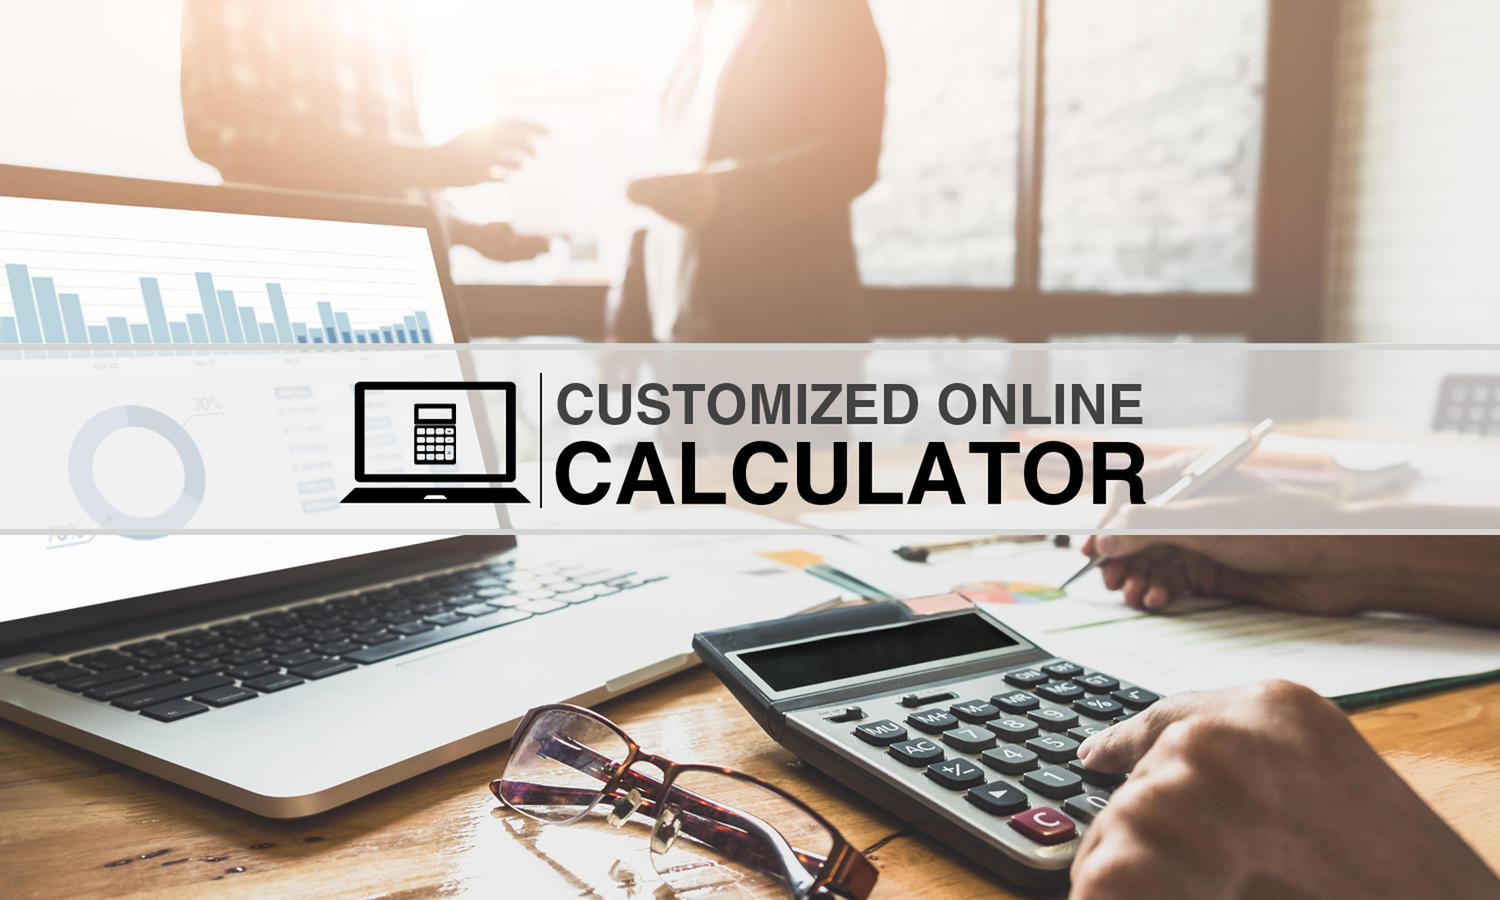 Customized Online Calculator by madridnyc - 109628